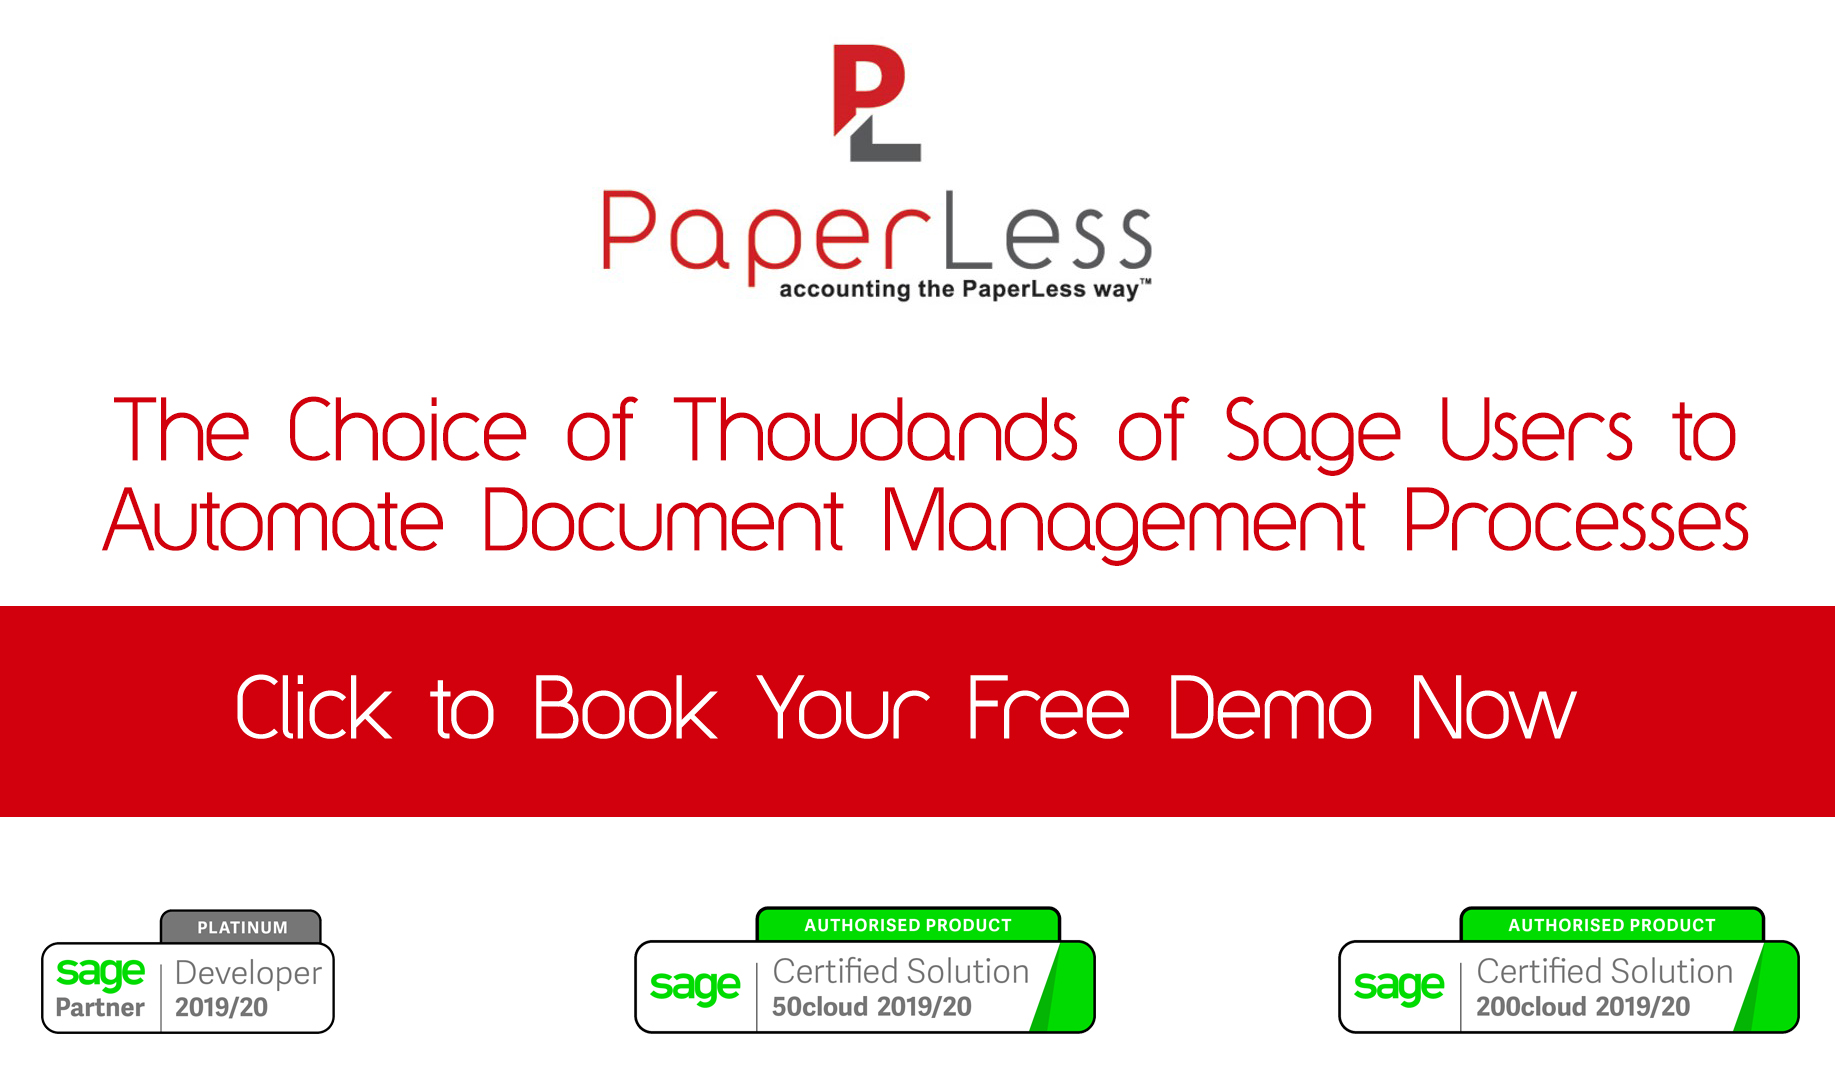 Click here to Book Your Free Online Demo of PaperLess Online Invoice Approval